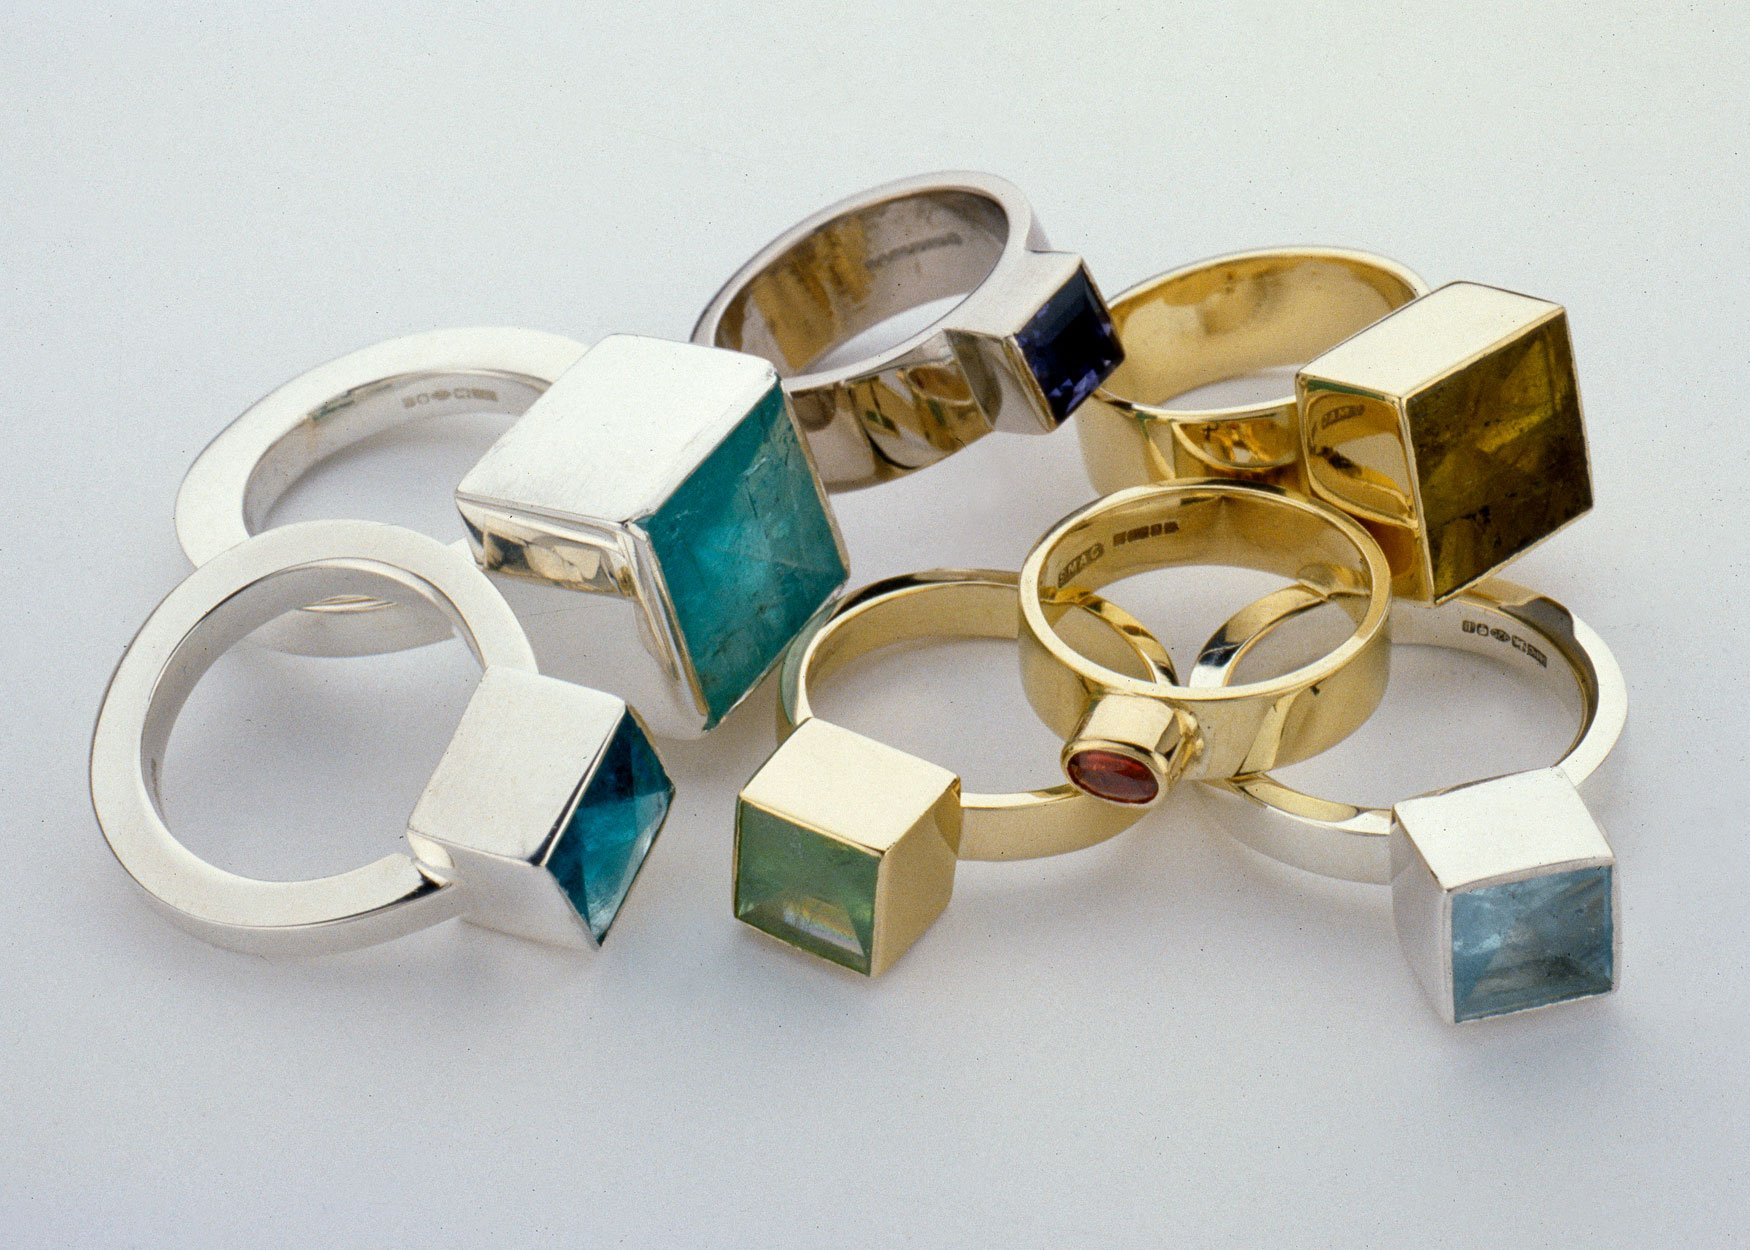 mirrorcut-stone-ring